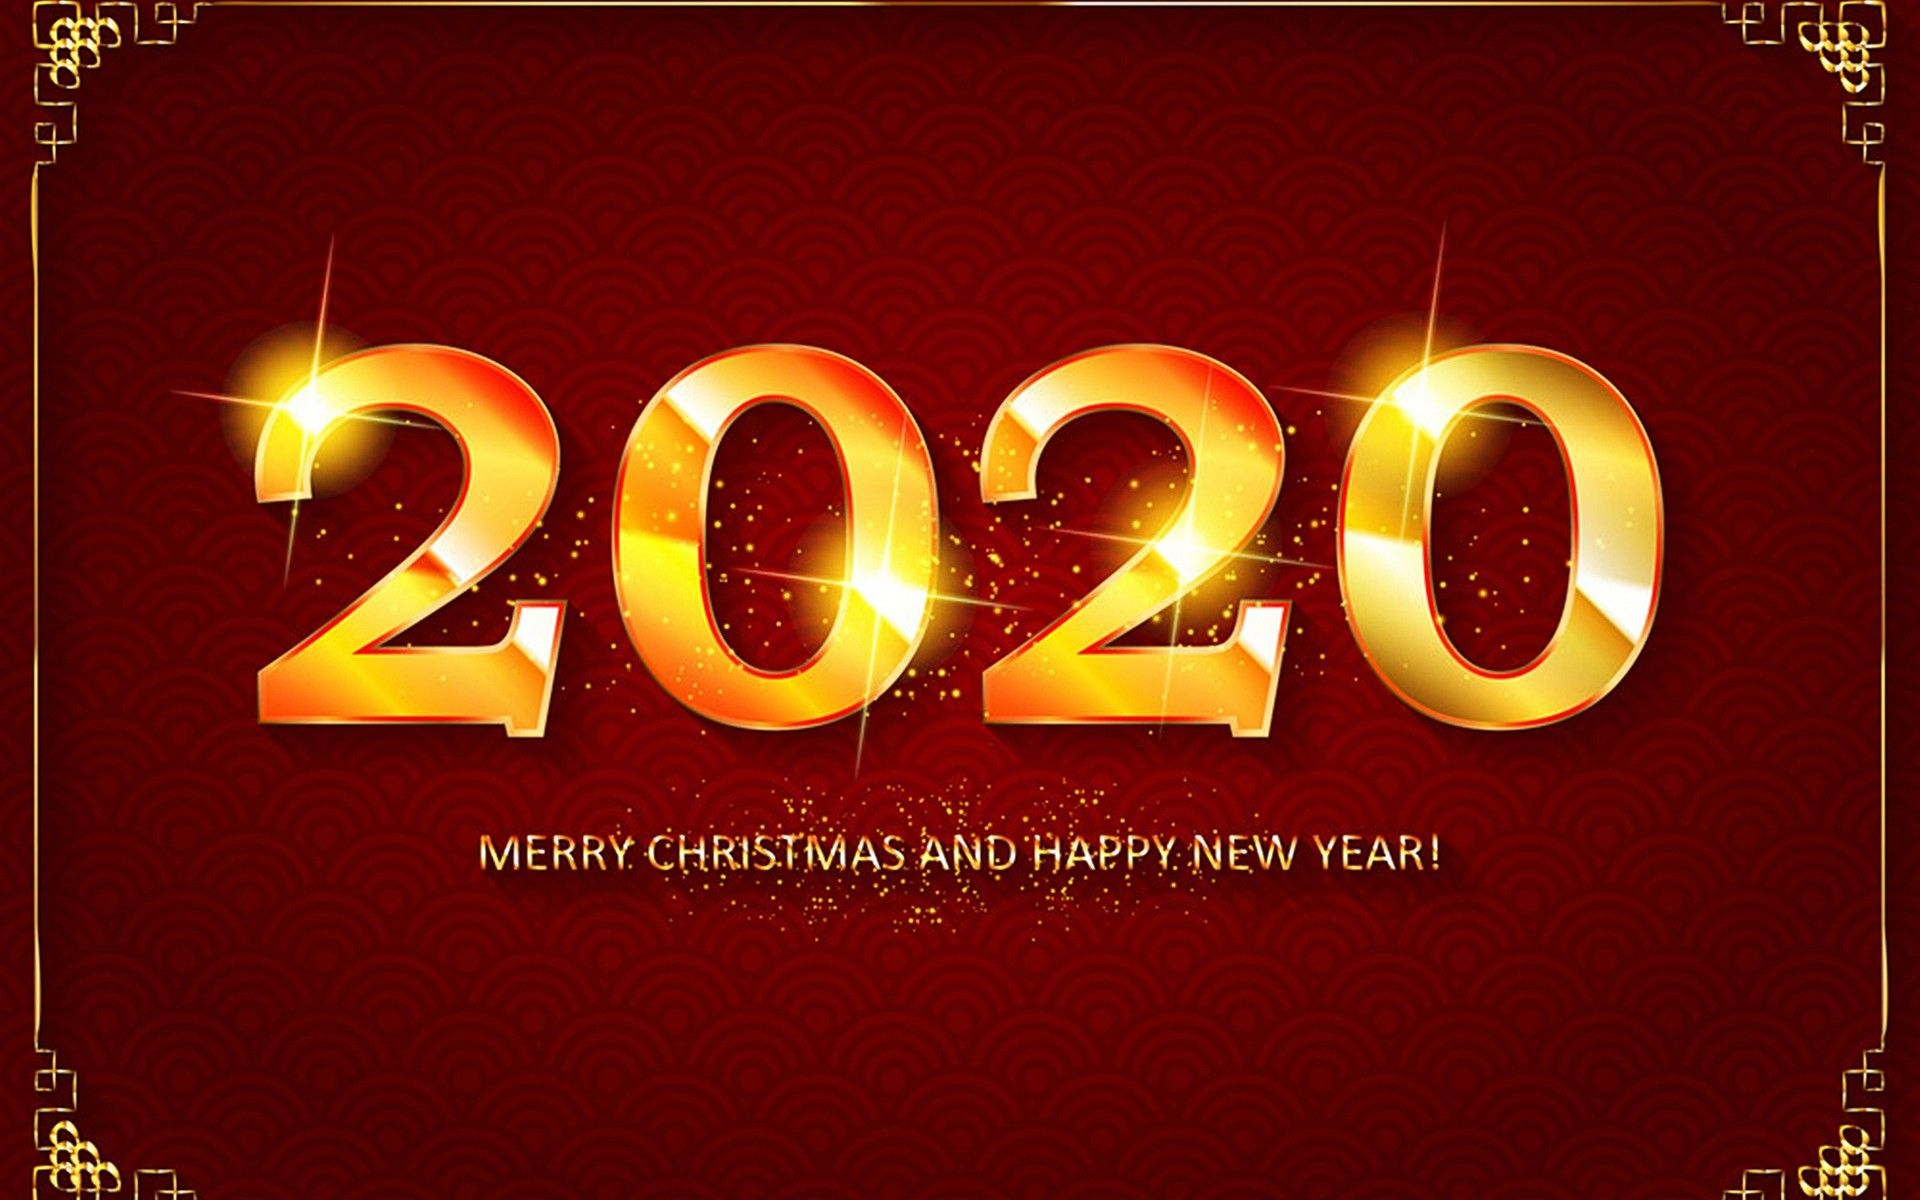 Happy New Year 2020 Wallpapers   Top Happy New Year 2020 1920x1200